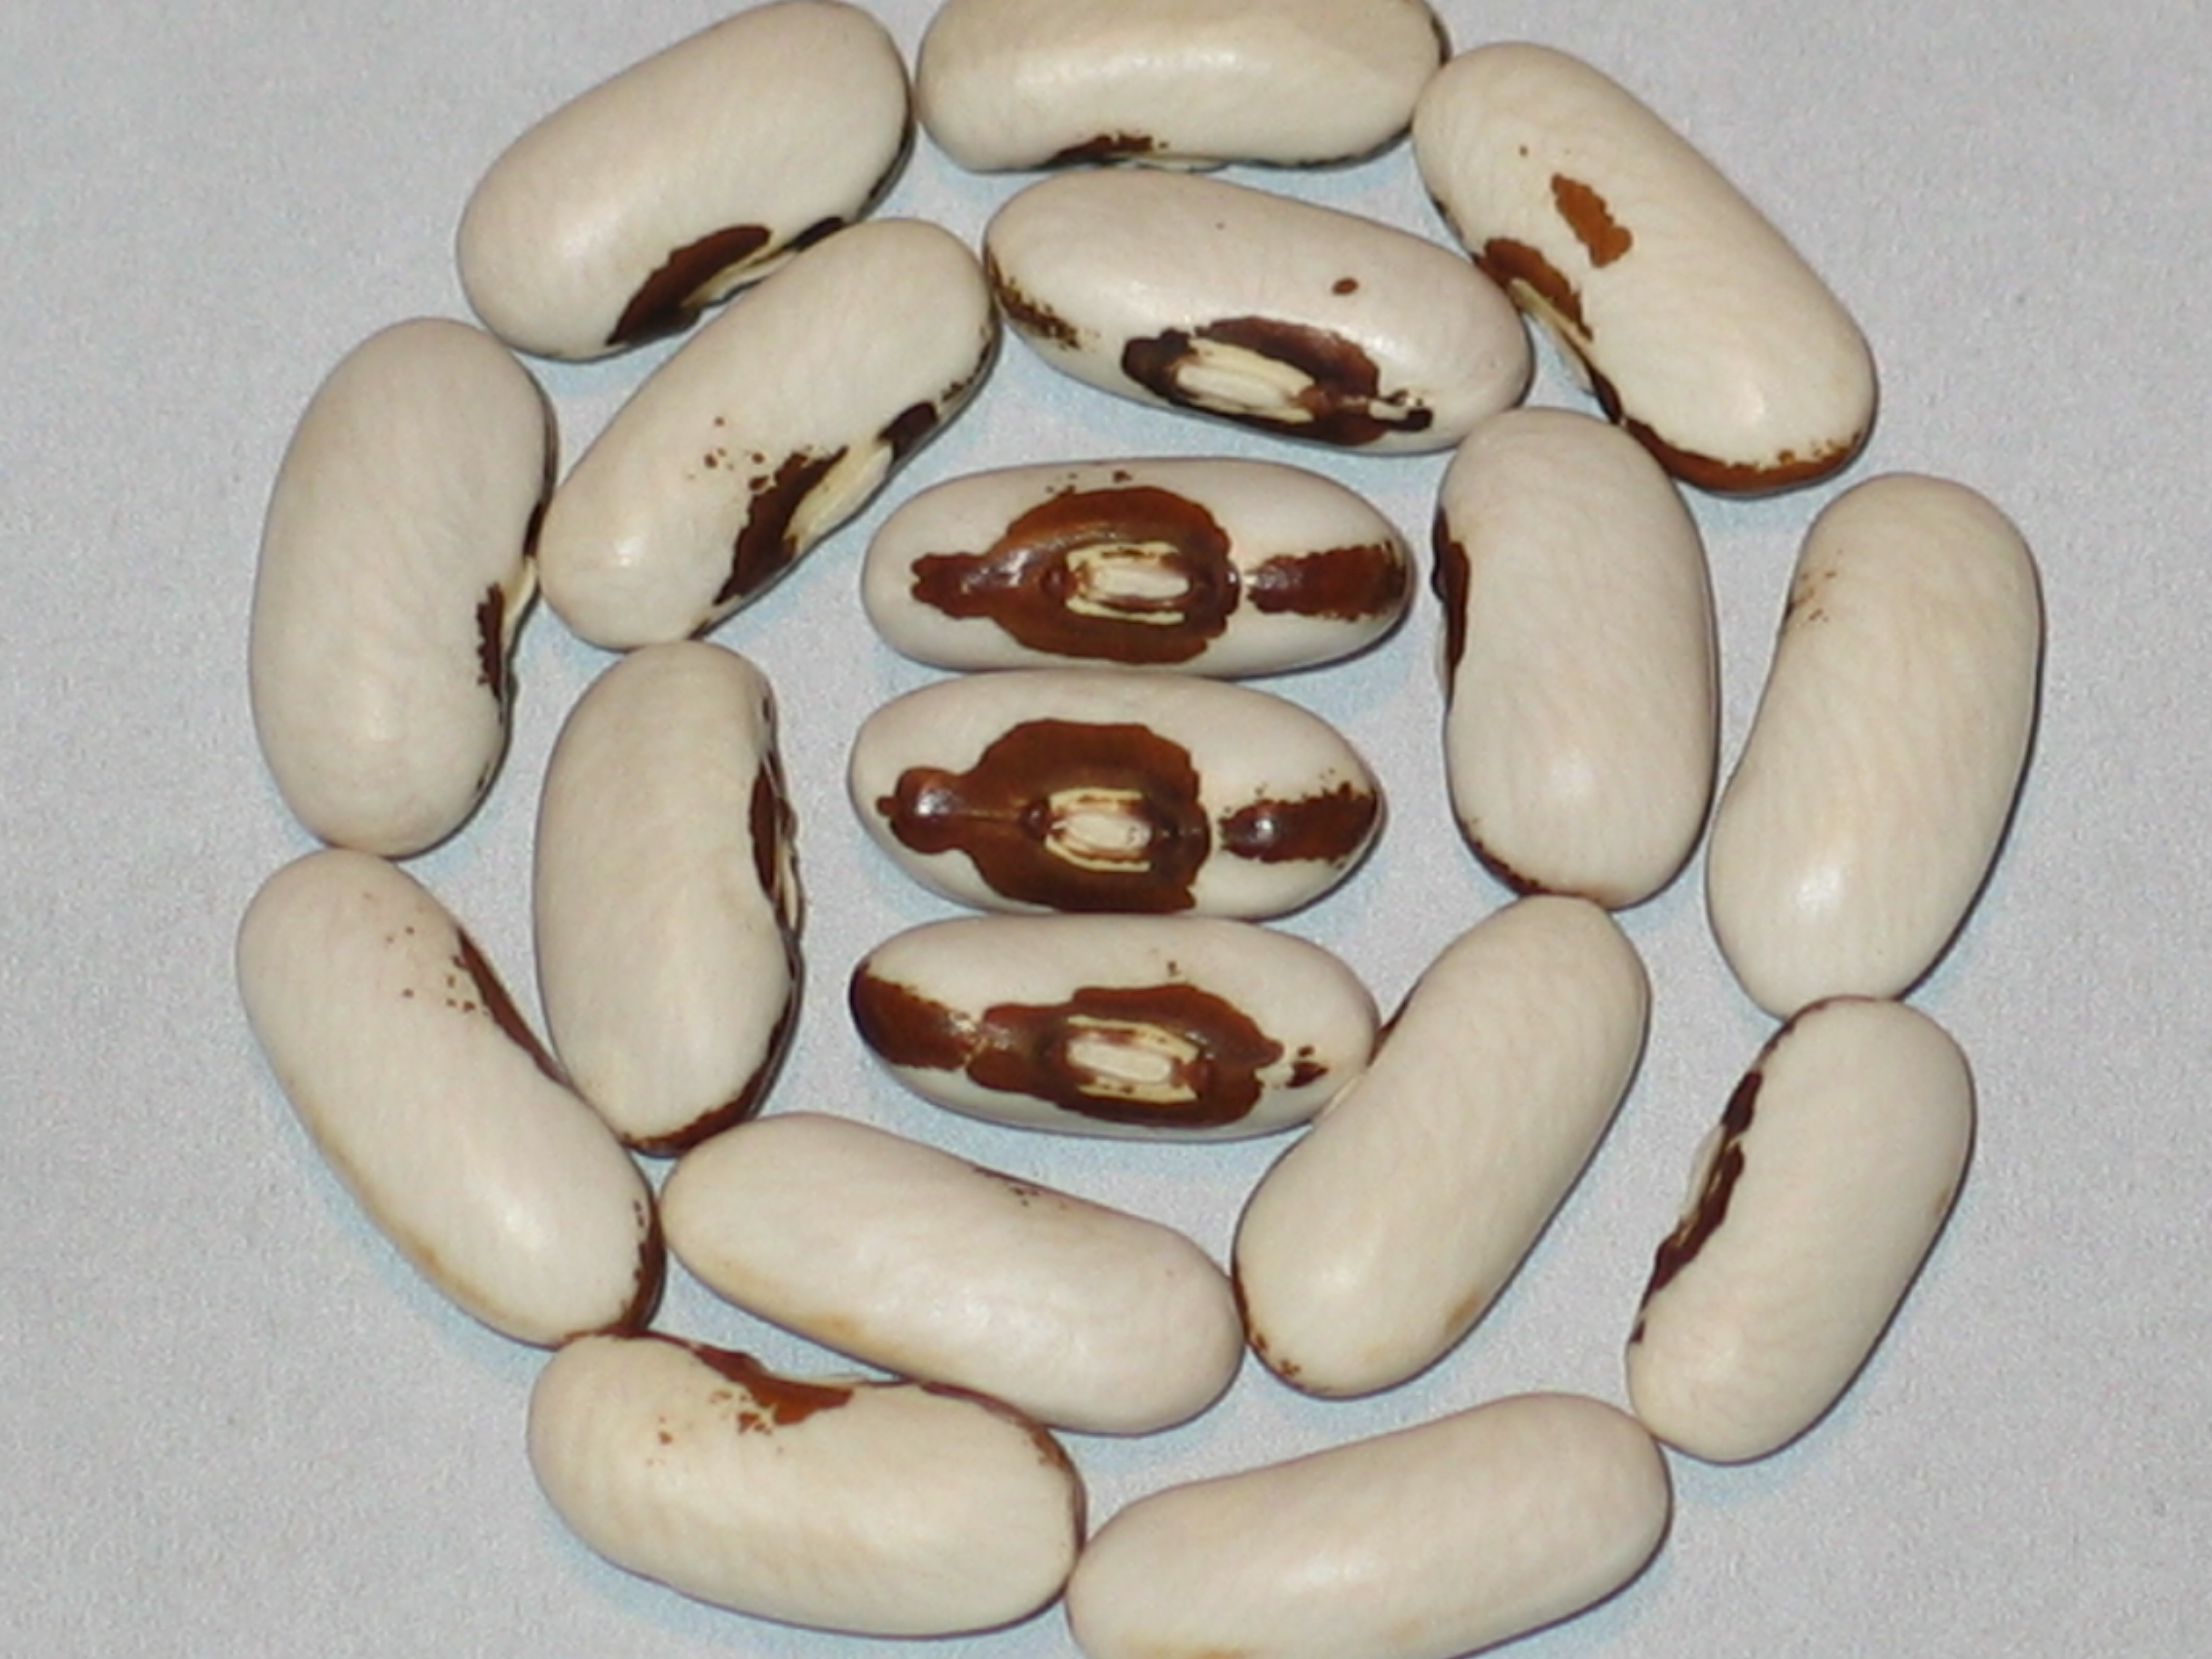 image of Puregold Wax beans